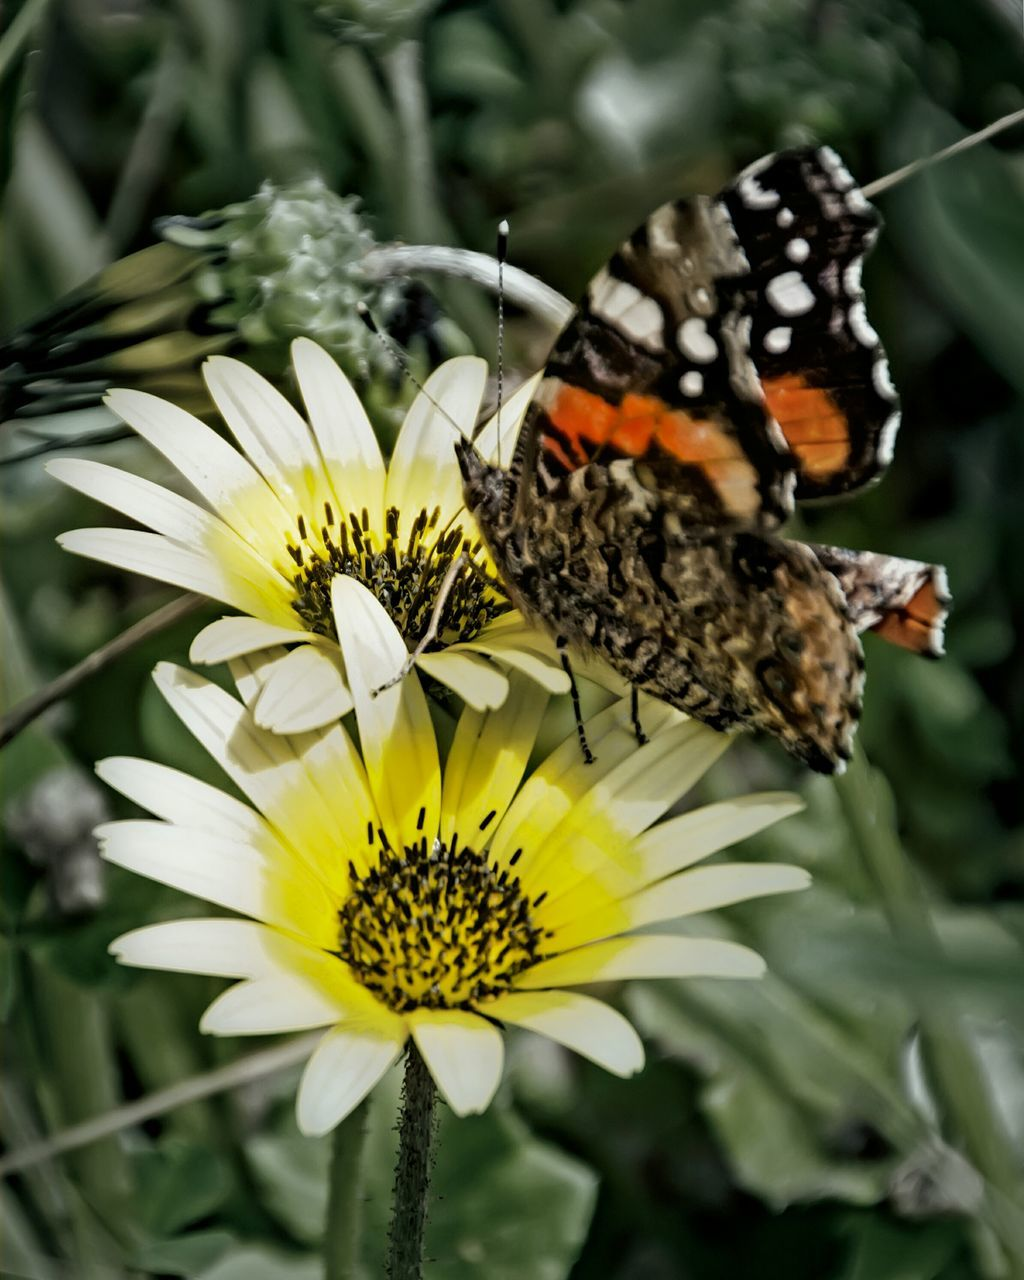 flower, insect, animal themes, fragility, animals in the wild, one animal, beauty in nature, nature, petal, freshness, plant, flower head, no people, butterfly - insect, growth, animal wildlife, pollination, day, close-up, outdoors, yellow